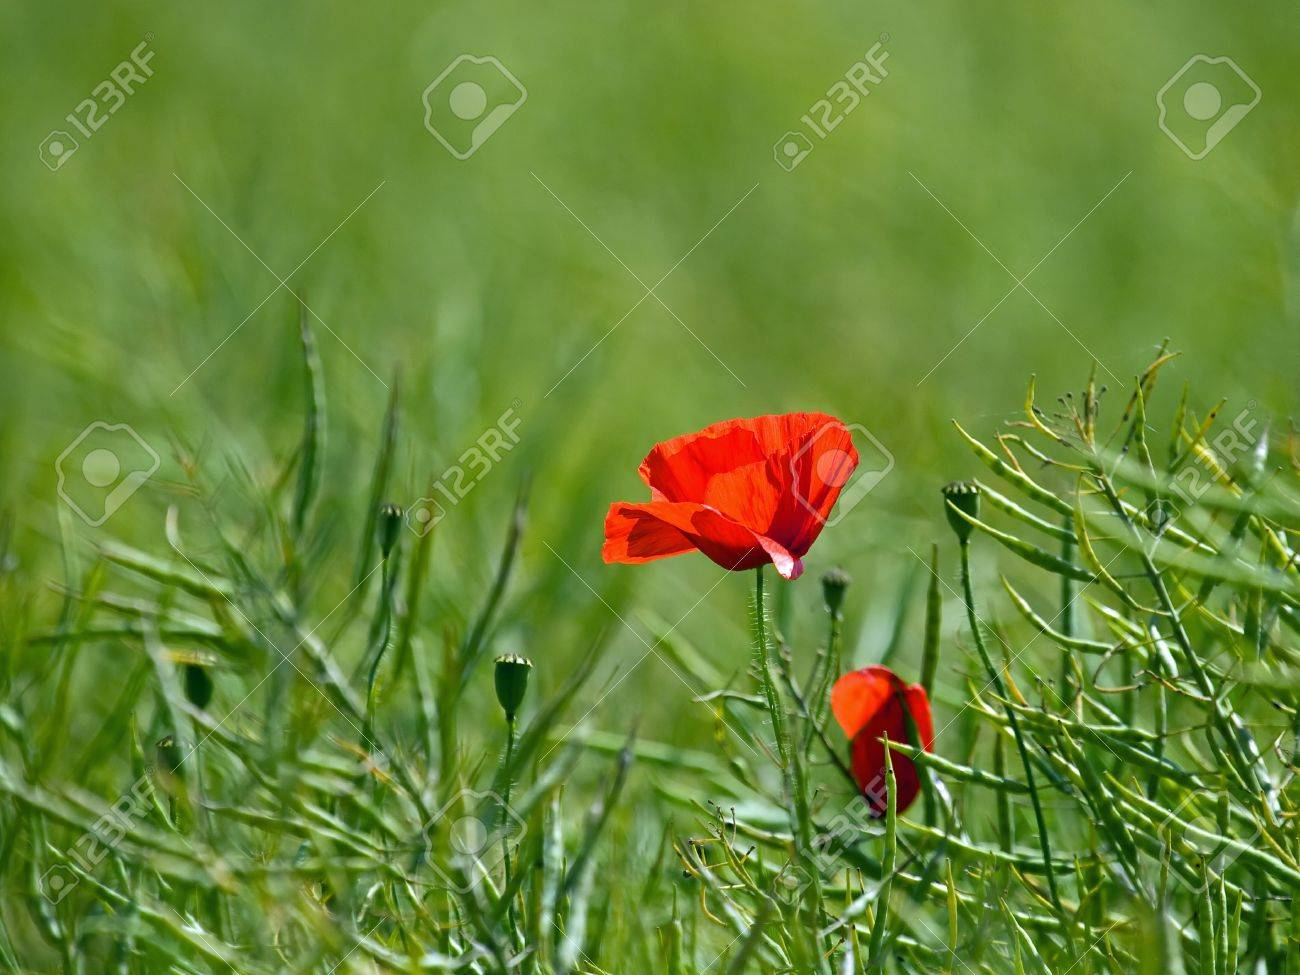 Red field poppy symbol of remembrancer the servicemen and red field poppy symbol of remembrancer the servicemen and women lost during wartime biocorpaavc Images